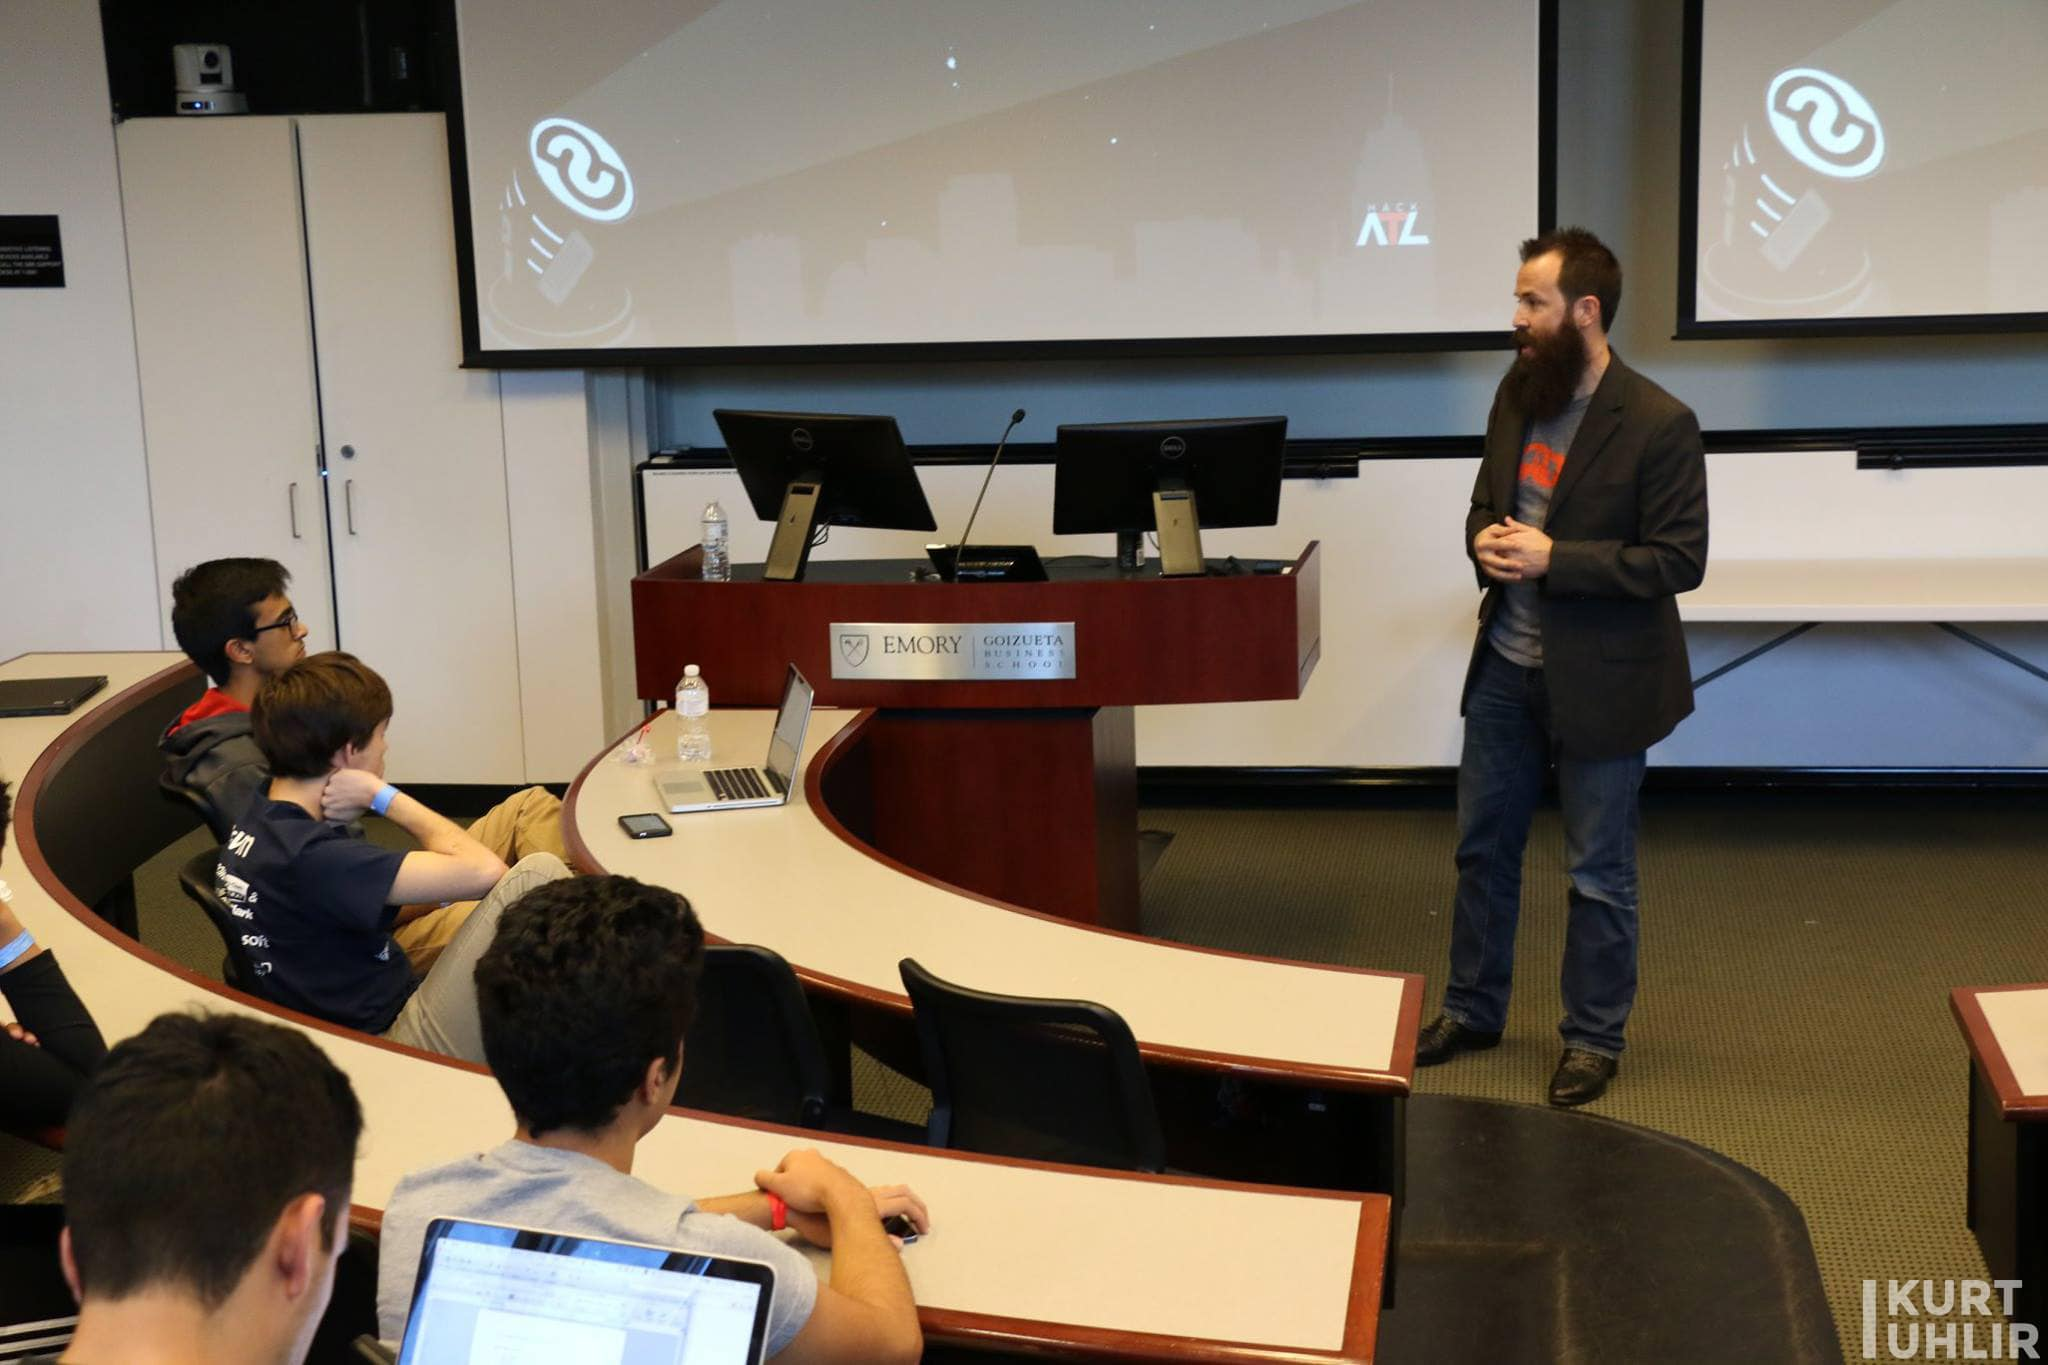 Kurt Uhlir speaking at Emory for HackATL on how to pitch your company